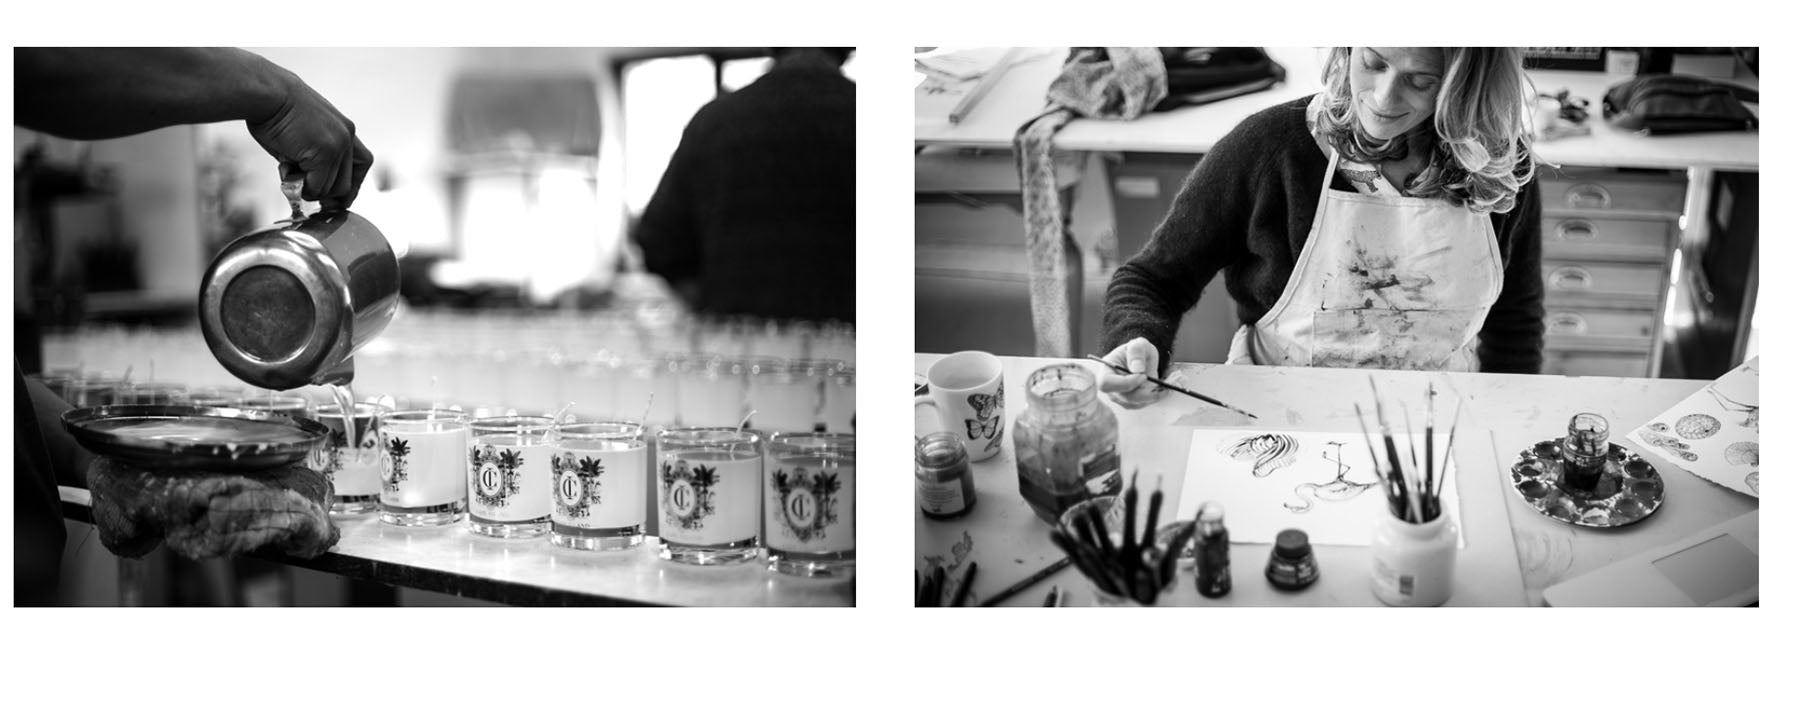 The Cape Island team creating their products. Cape Island luxury candles, soap products and home fragrances are available at Sarza home goods and furniture store in Rye New York